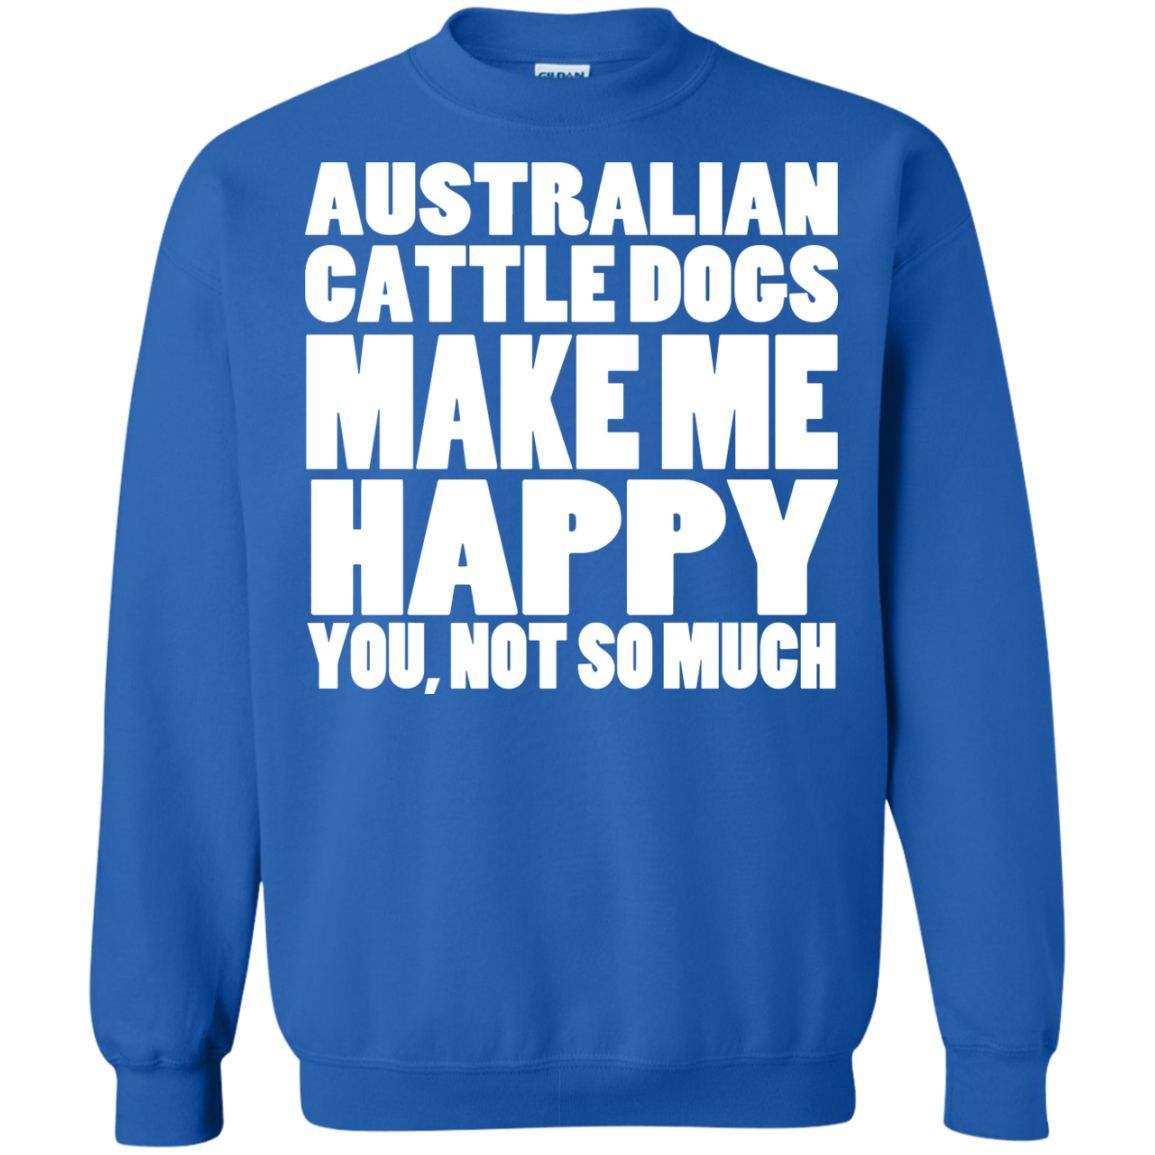 Australian Cattle Dogs Make Me Happy You Not So Much Sweatshirts